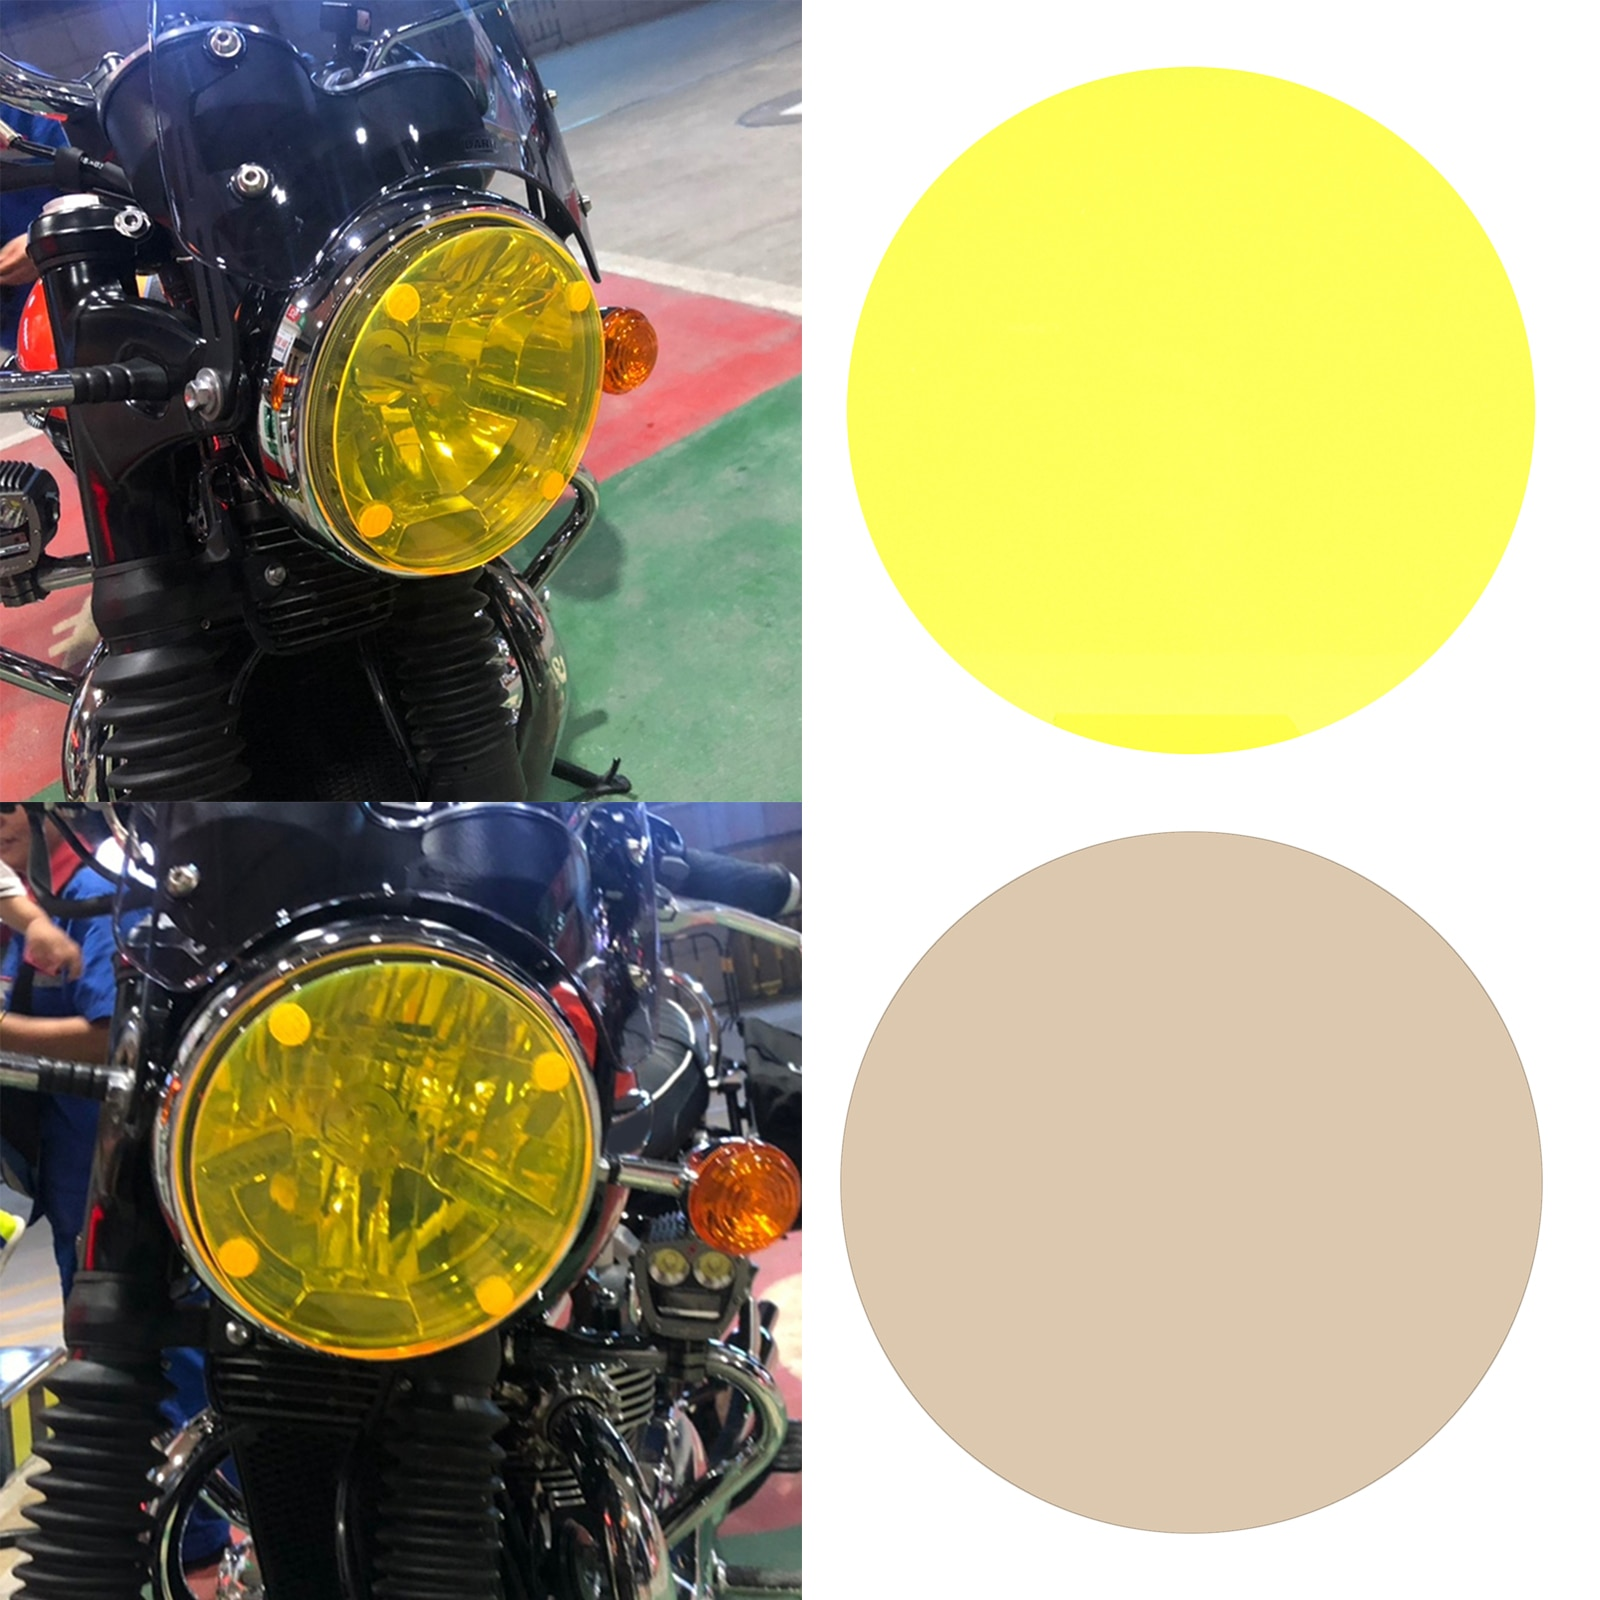 Headlight Front Light Lens Filter for BMW R nineT 13-17 Pure 16-17 Urban S 16-17 R1100 R 94-00